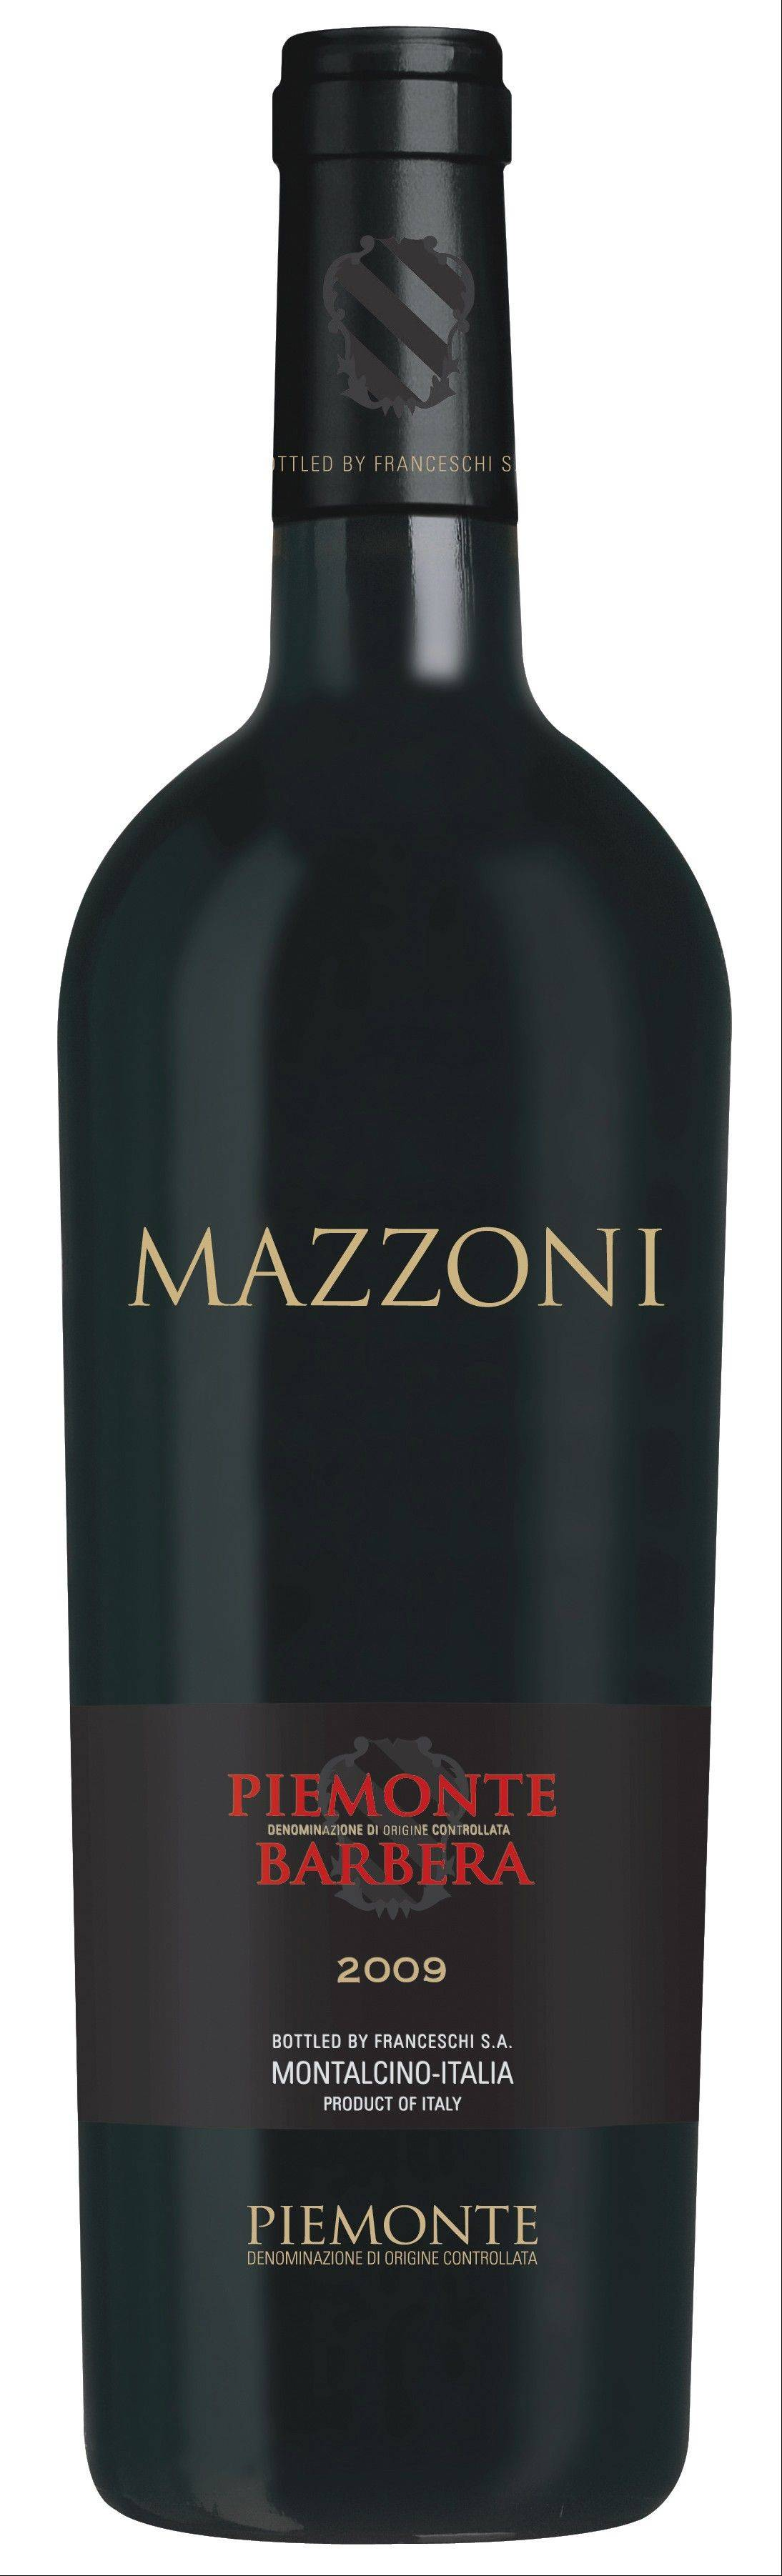 Enjoy Mazzoni Barbera with lightly sauced pasta or grilled burgers and brats.